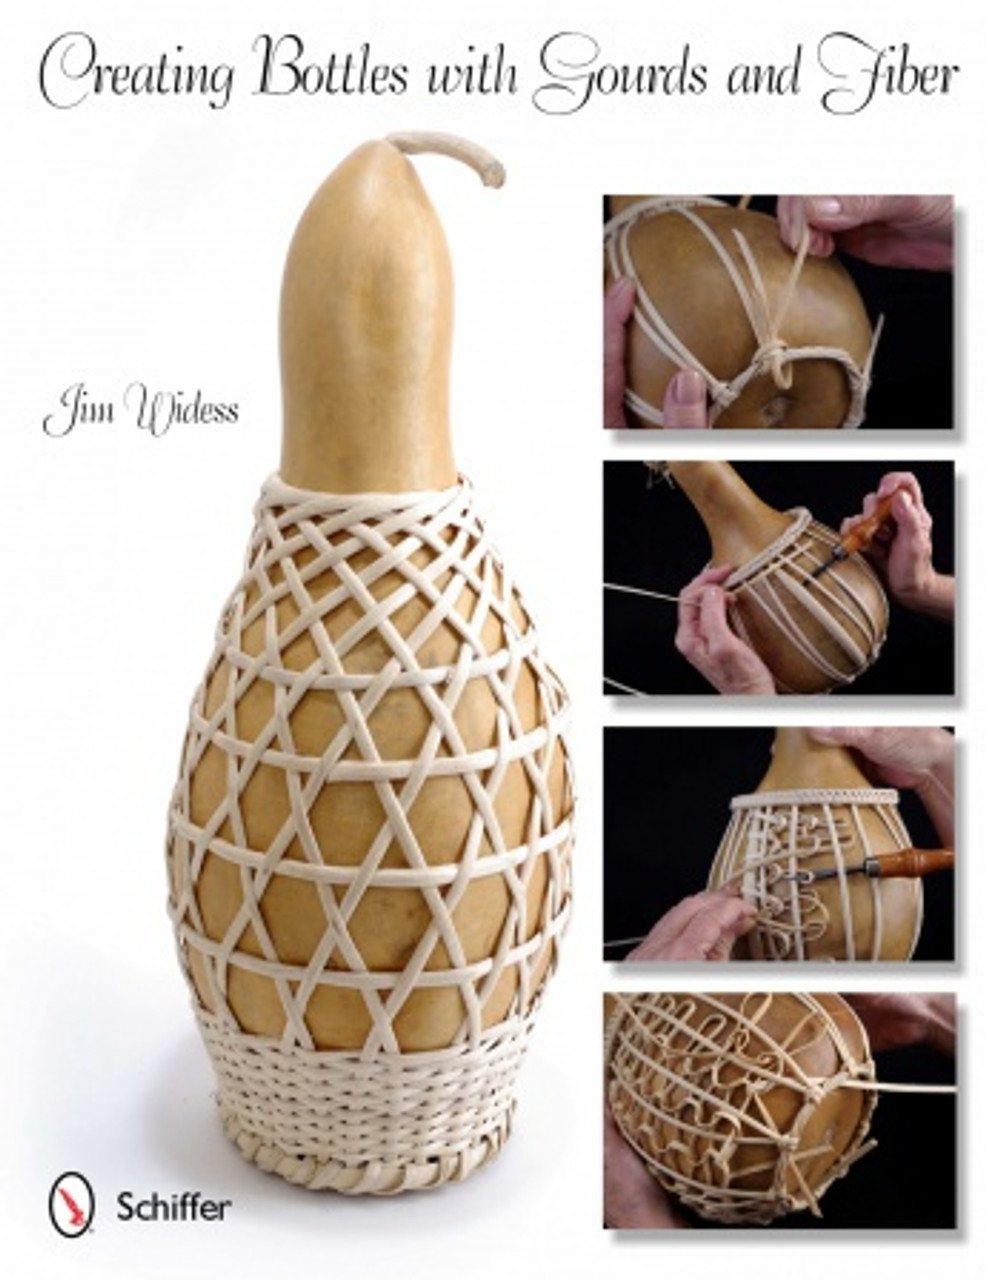 Creating Bottles With Gourds And Fiber showing the cover  with different styles of gourds and weaving fiber around them.